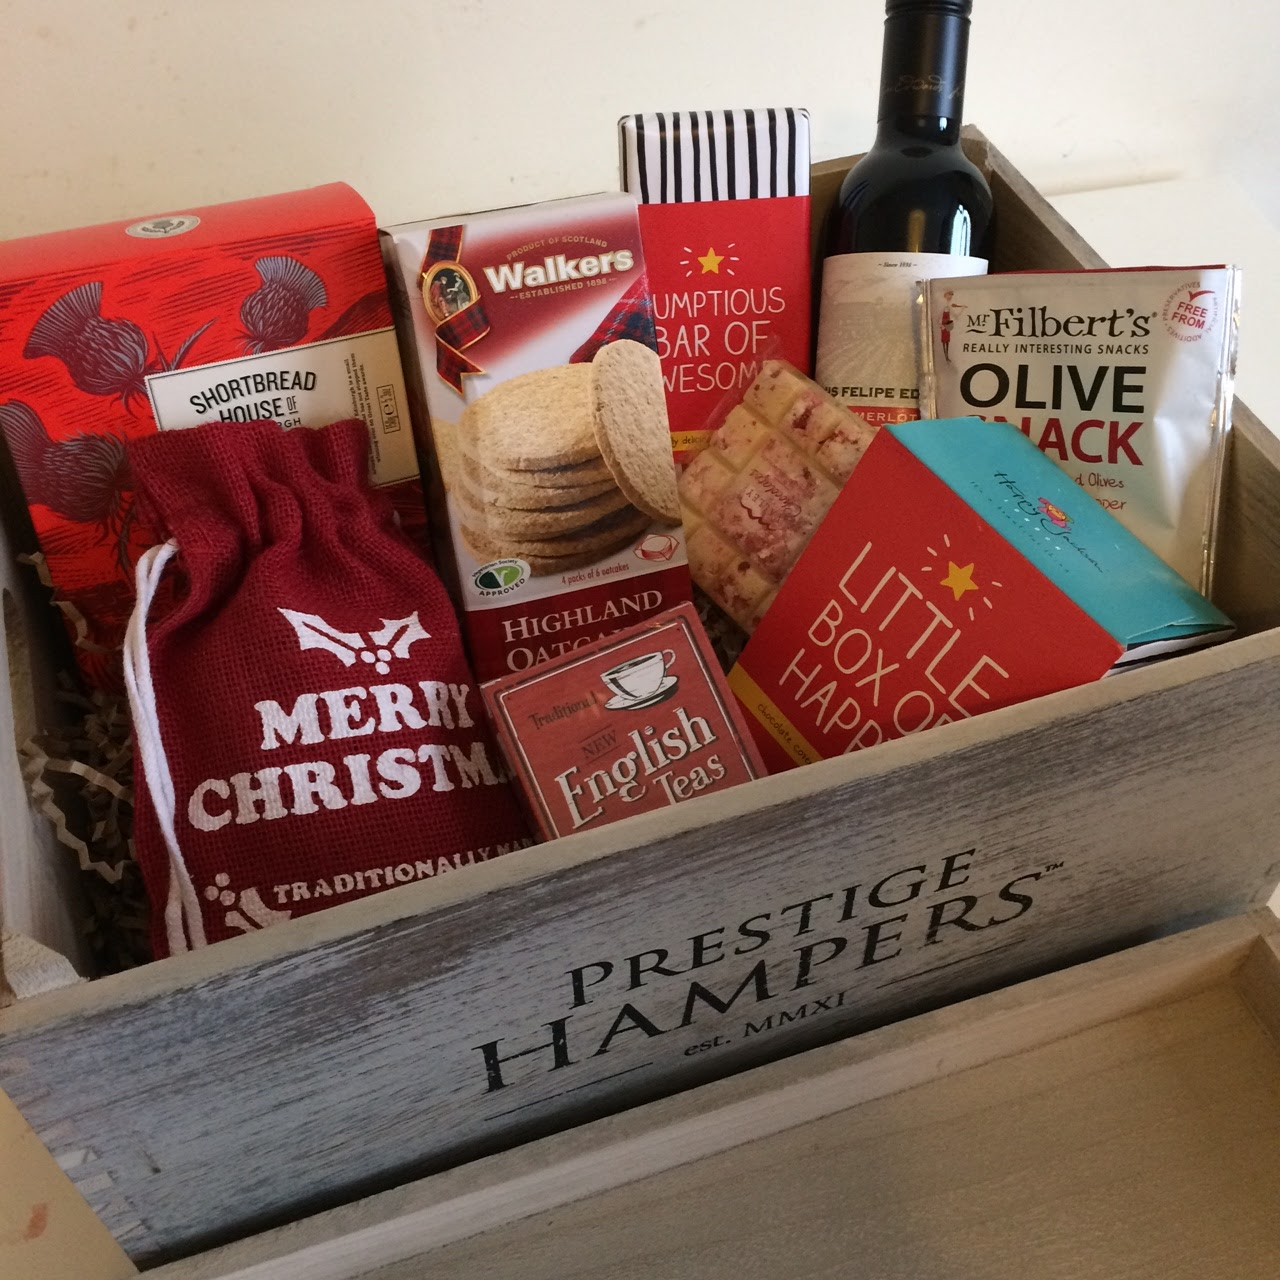 They grow so quick christmas tradition from prestige hampers the christmas tradition hamper arrived well packaged in a cardboard box with bubble wrap for protection the hamper itself is a stylish vintage style wooden solutioingenieria Choice Image